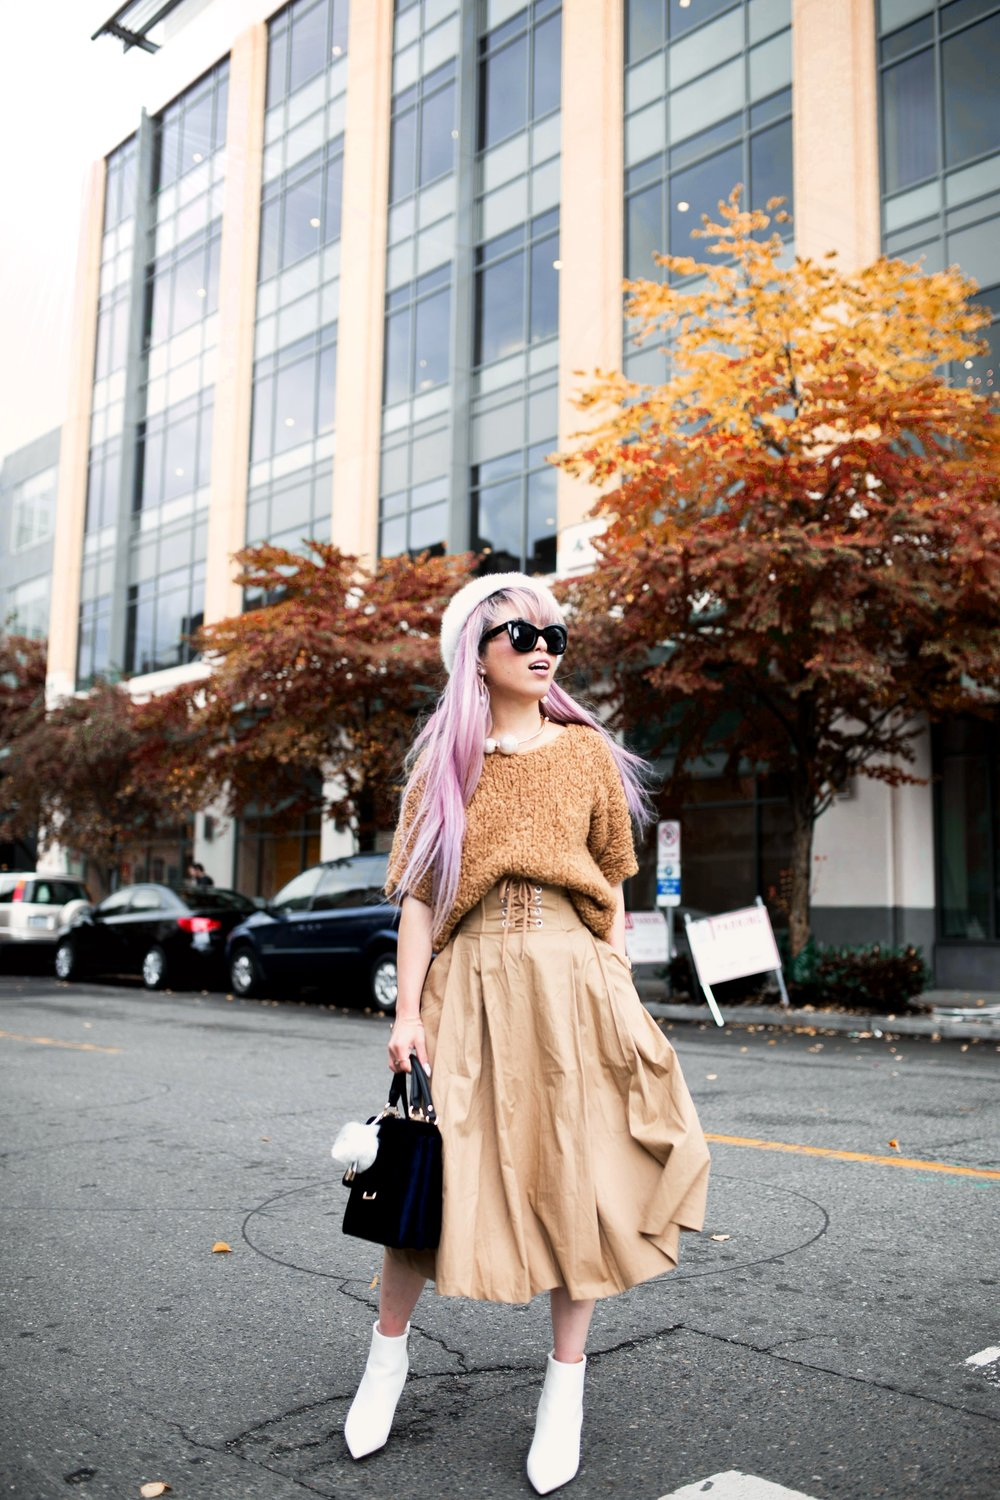 Forever 21 Fluffy White Beret, Express Pearl Collar Necklace, Thrifted Teddy Camel Top, H&M High-waisted camel midi skirt, zara velvet bag, Forever 21 White Ankle Boots, Aika's Love Closet, Seattle Fashion Style Blogger, Japanese, pink hair, street style, petite fashion  5